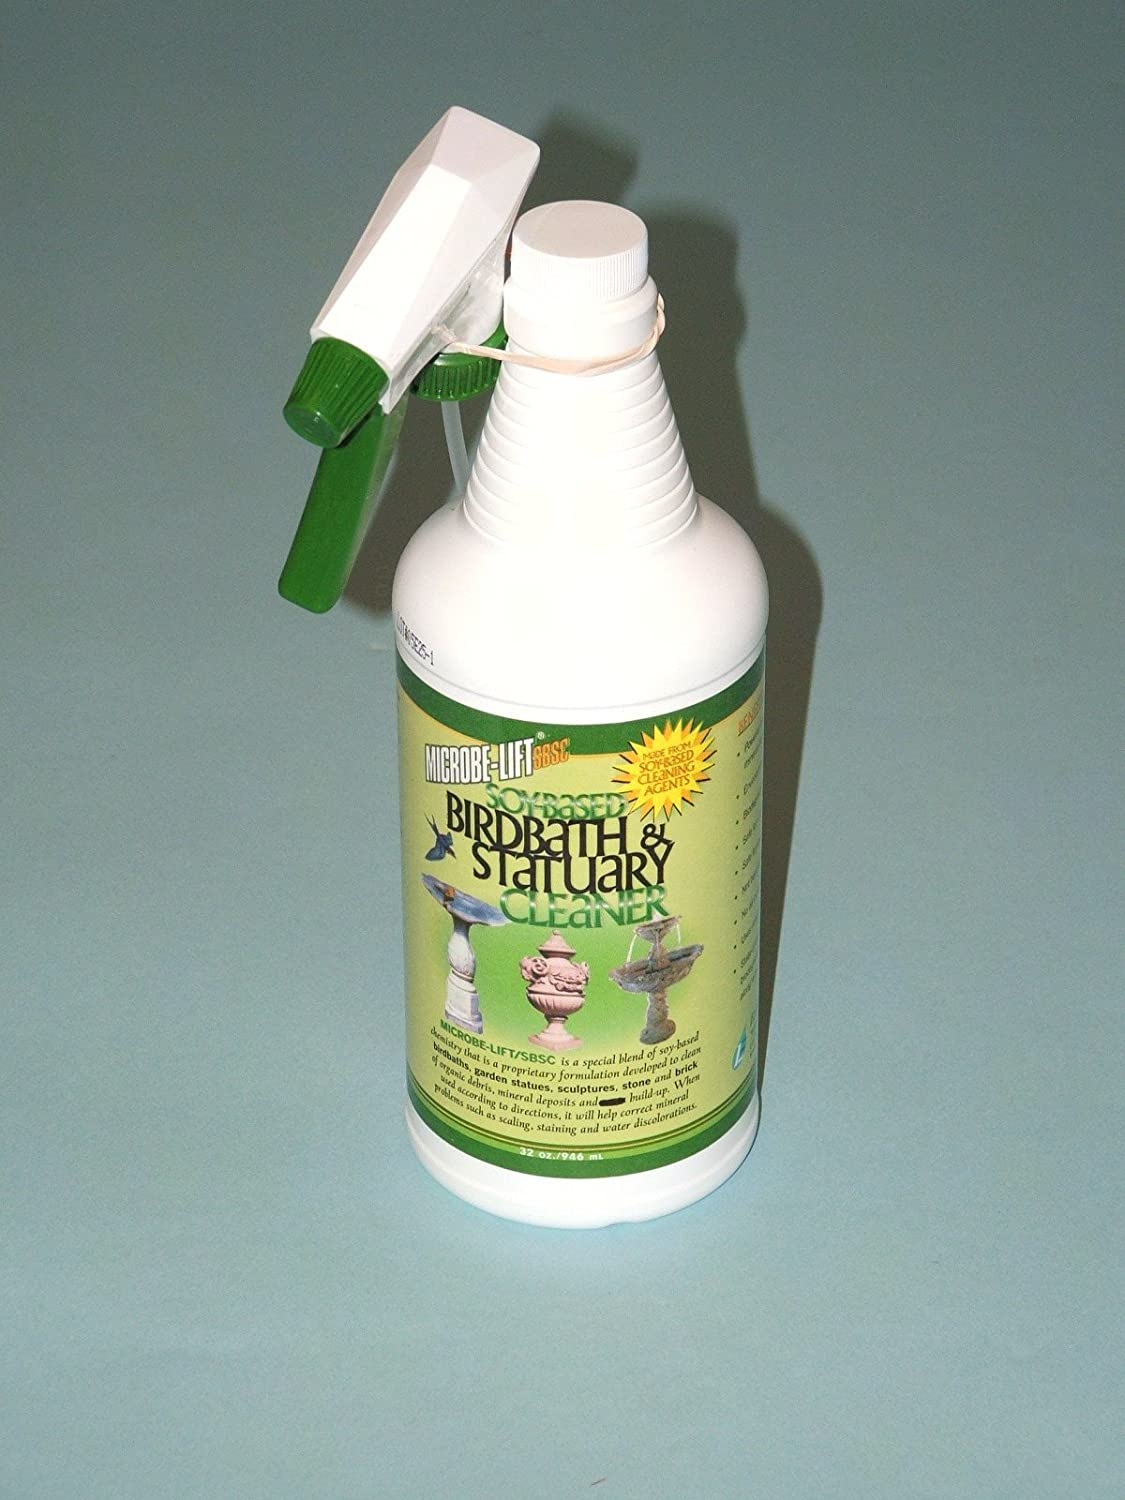 Ecological Laboratories 32 oz. Bird Bath and Statuary